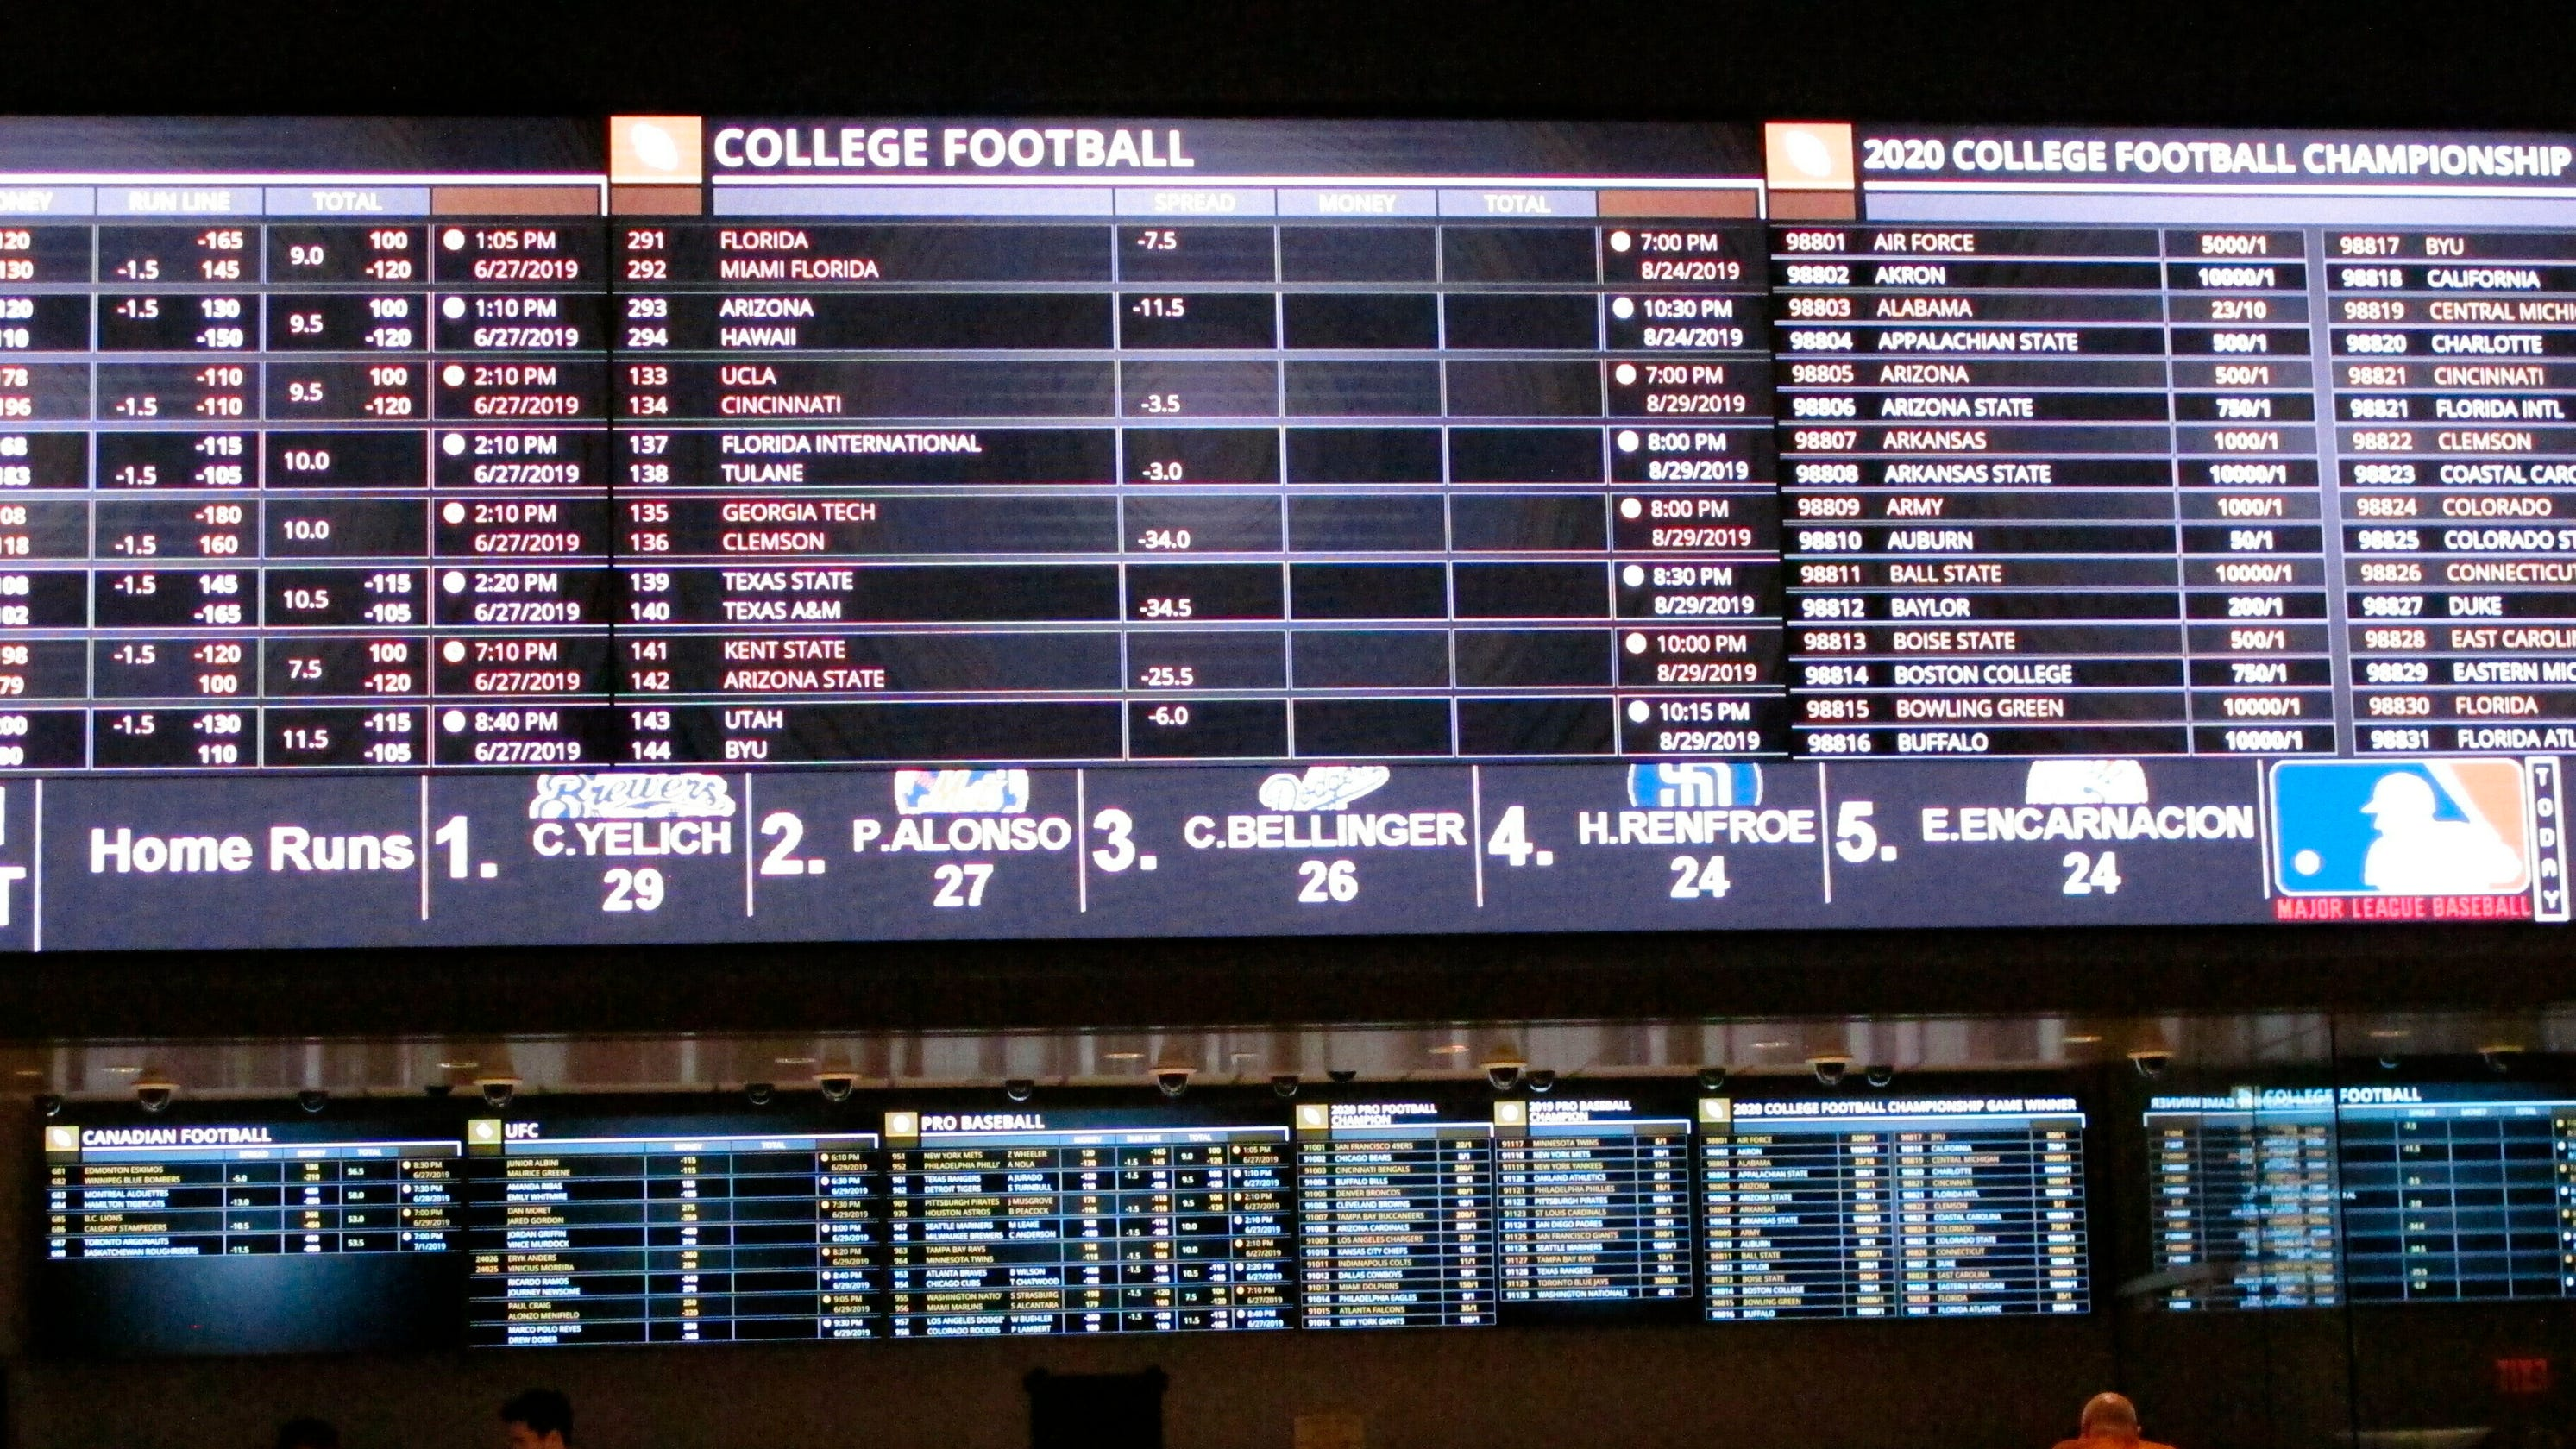 Colorado & Kentucky On Their Way To Legalized Sports Betting